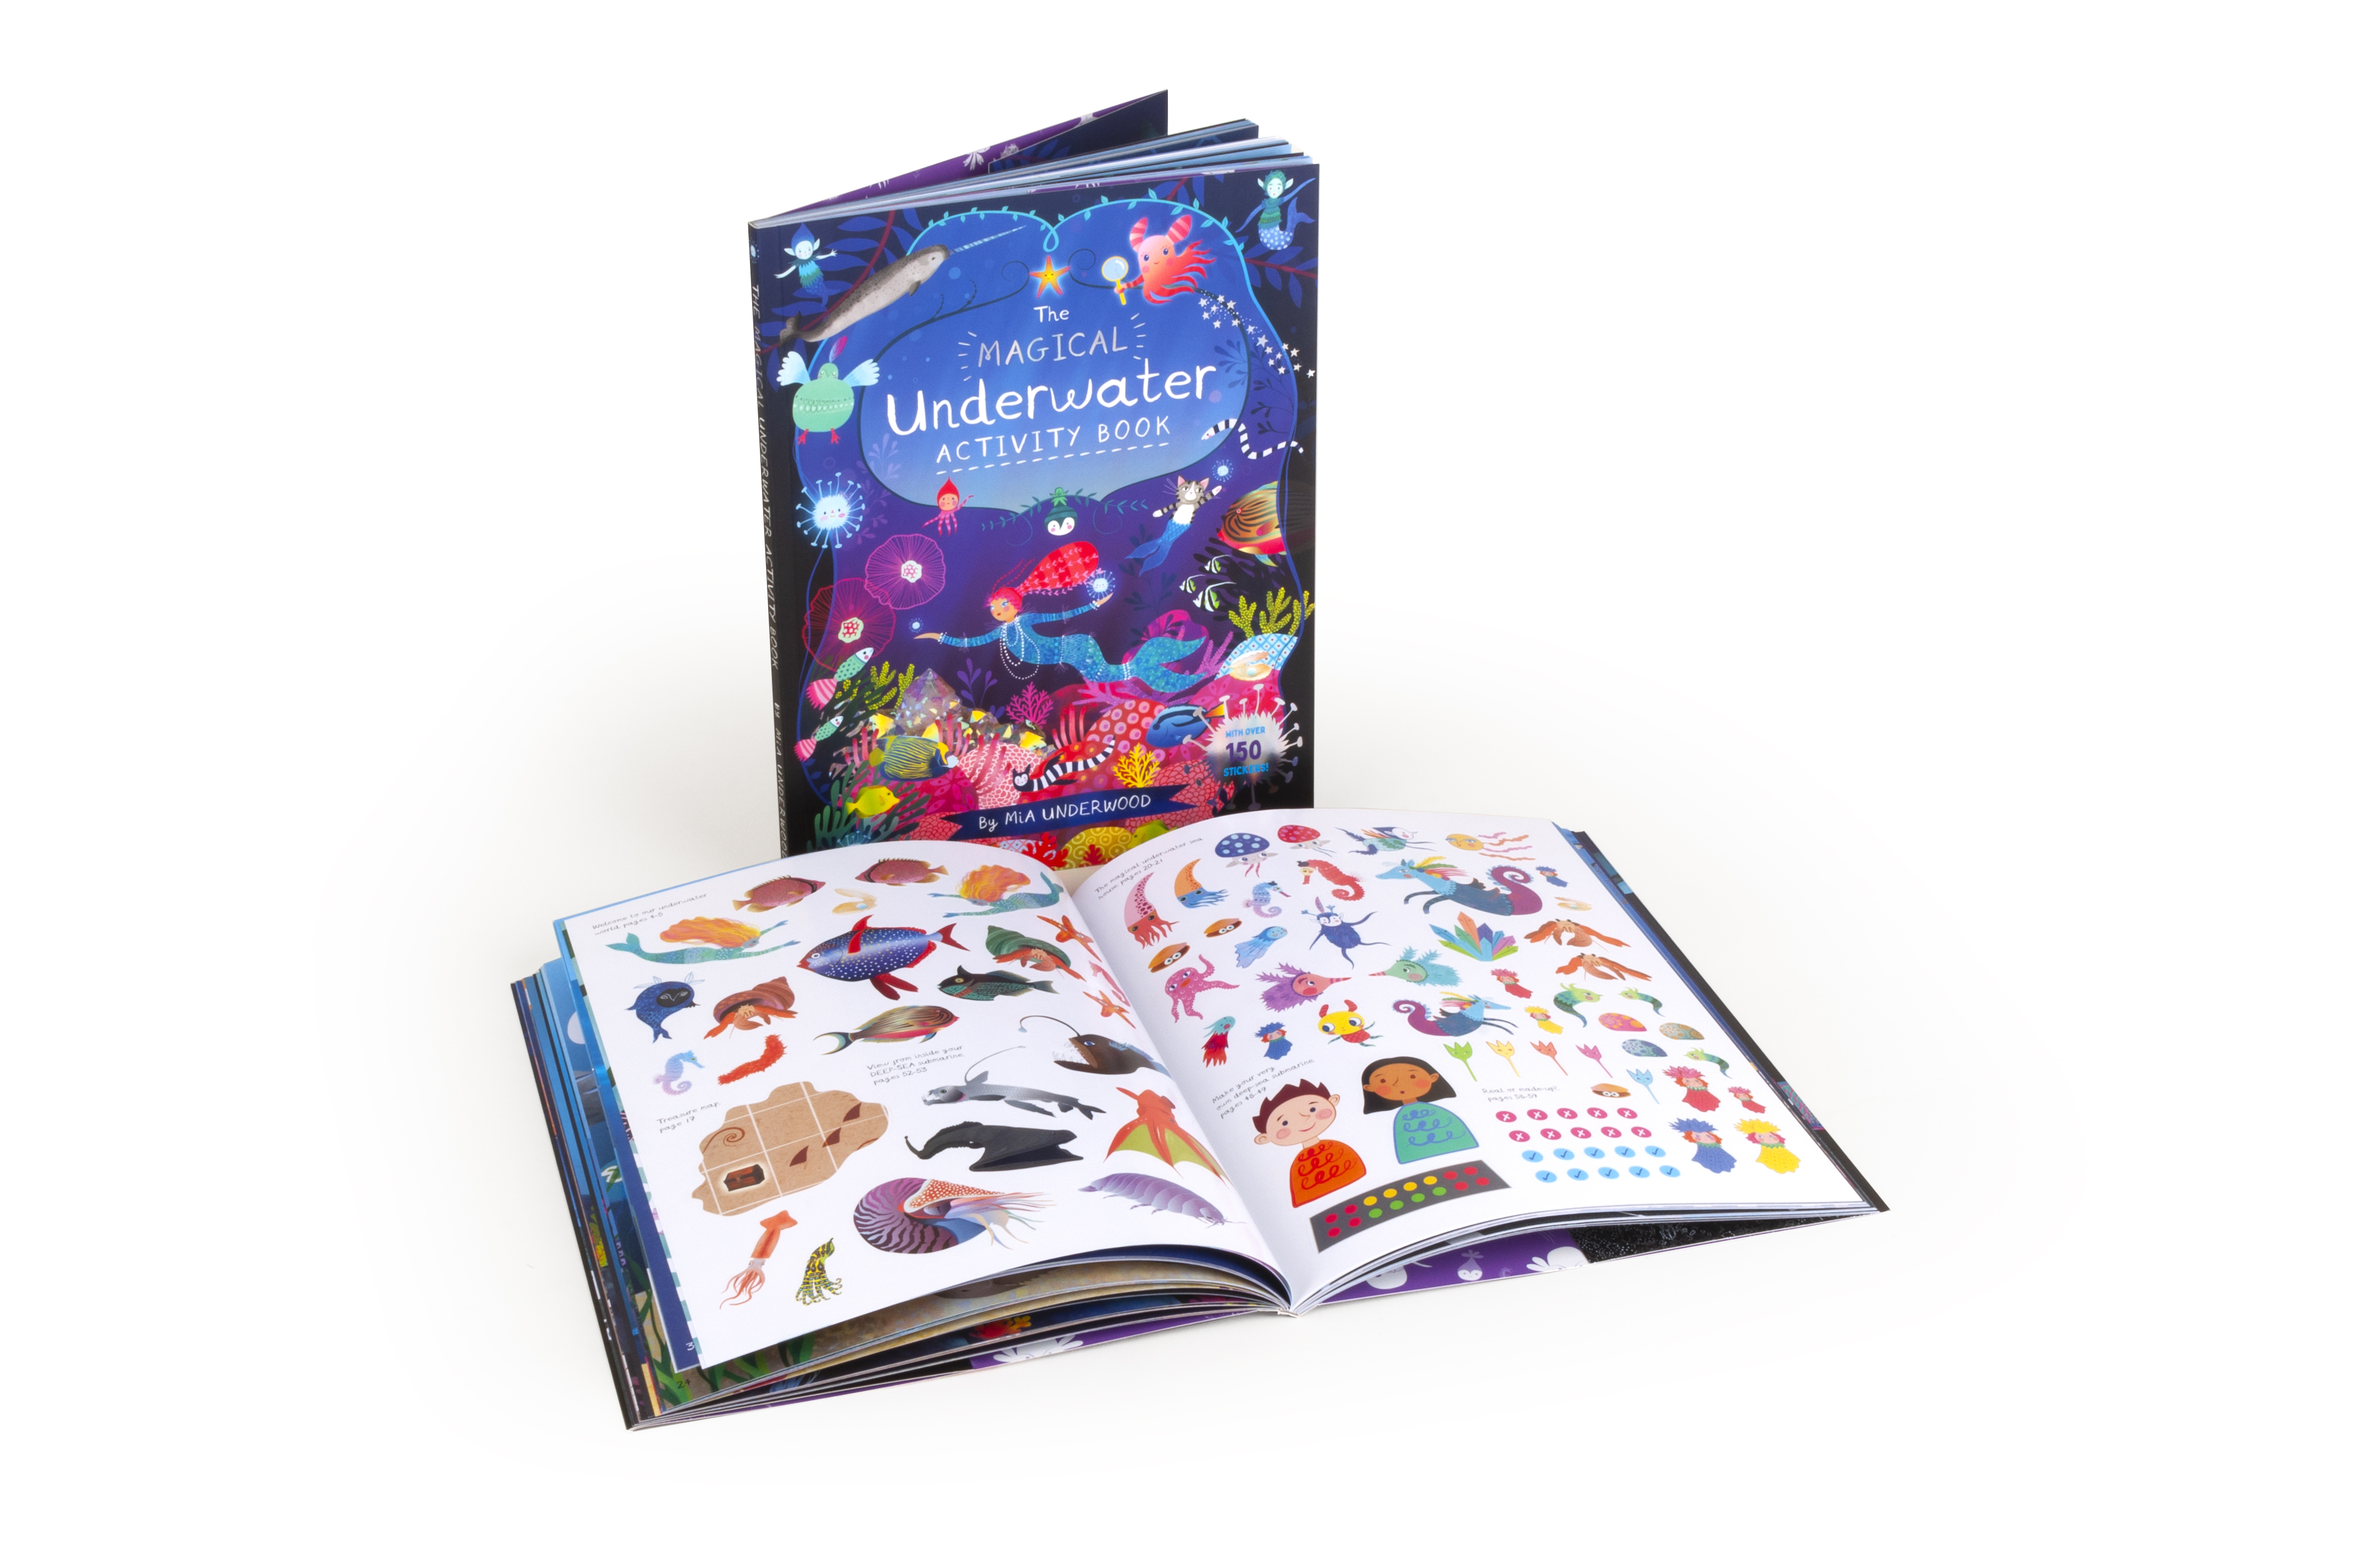 The Magical Underwater Activity Book, worth £9.99  image